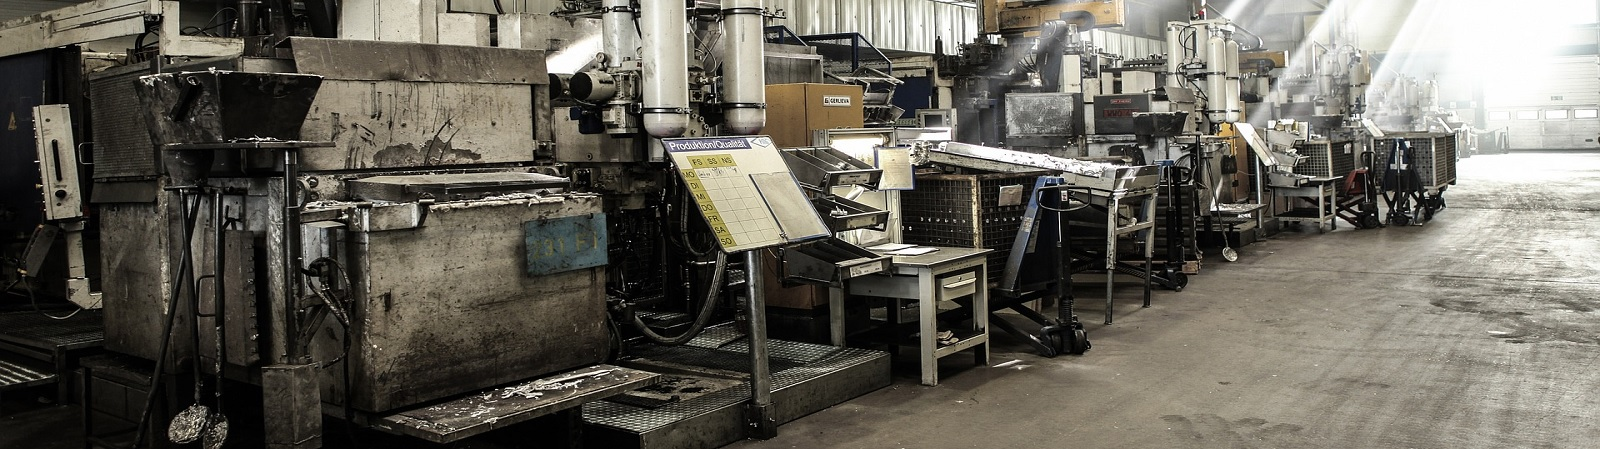 header_industrie 40 alter maschinenpark